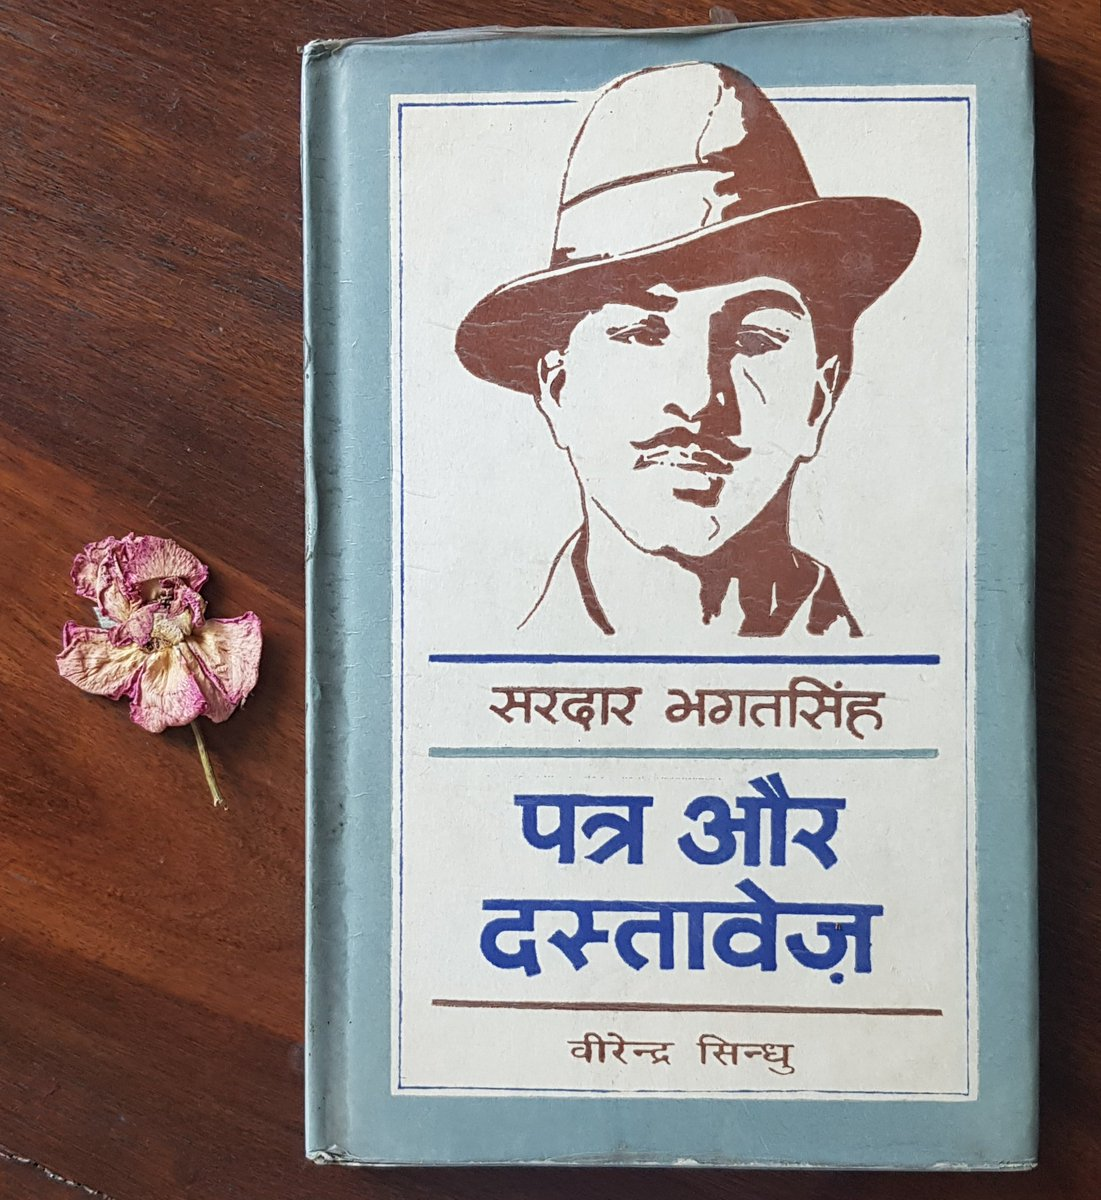 Day 75 : #100Days of posting cover of books I love (1 book a day for 100 days) No expectations,no reviews,just the covers #MyFavouriteBooks #मेरीपसन्दीदाकिताबोंकेकवर started by @gulrayys with @film_worm  & @rekha_bhardwaj https://t.co/IjHJm2ZcPp